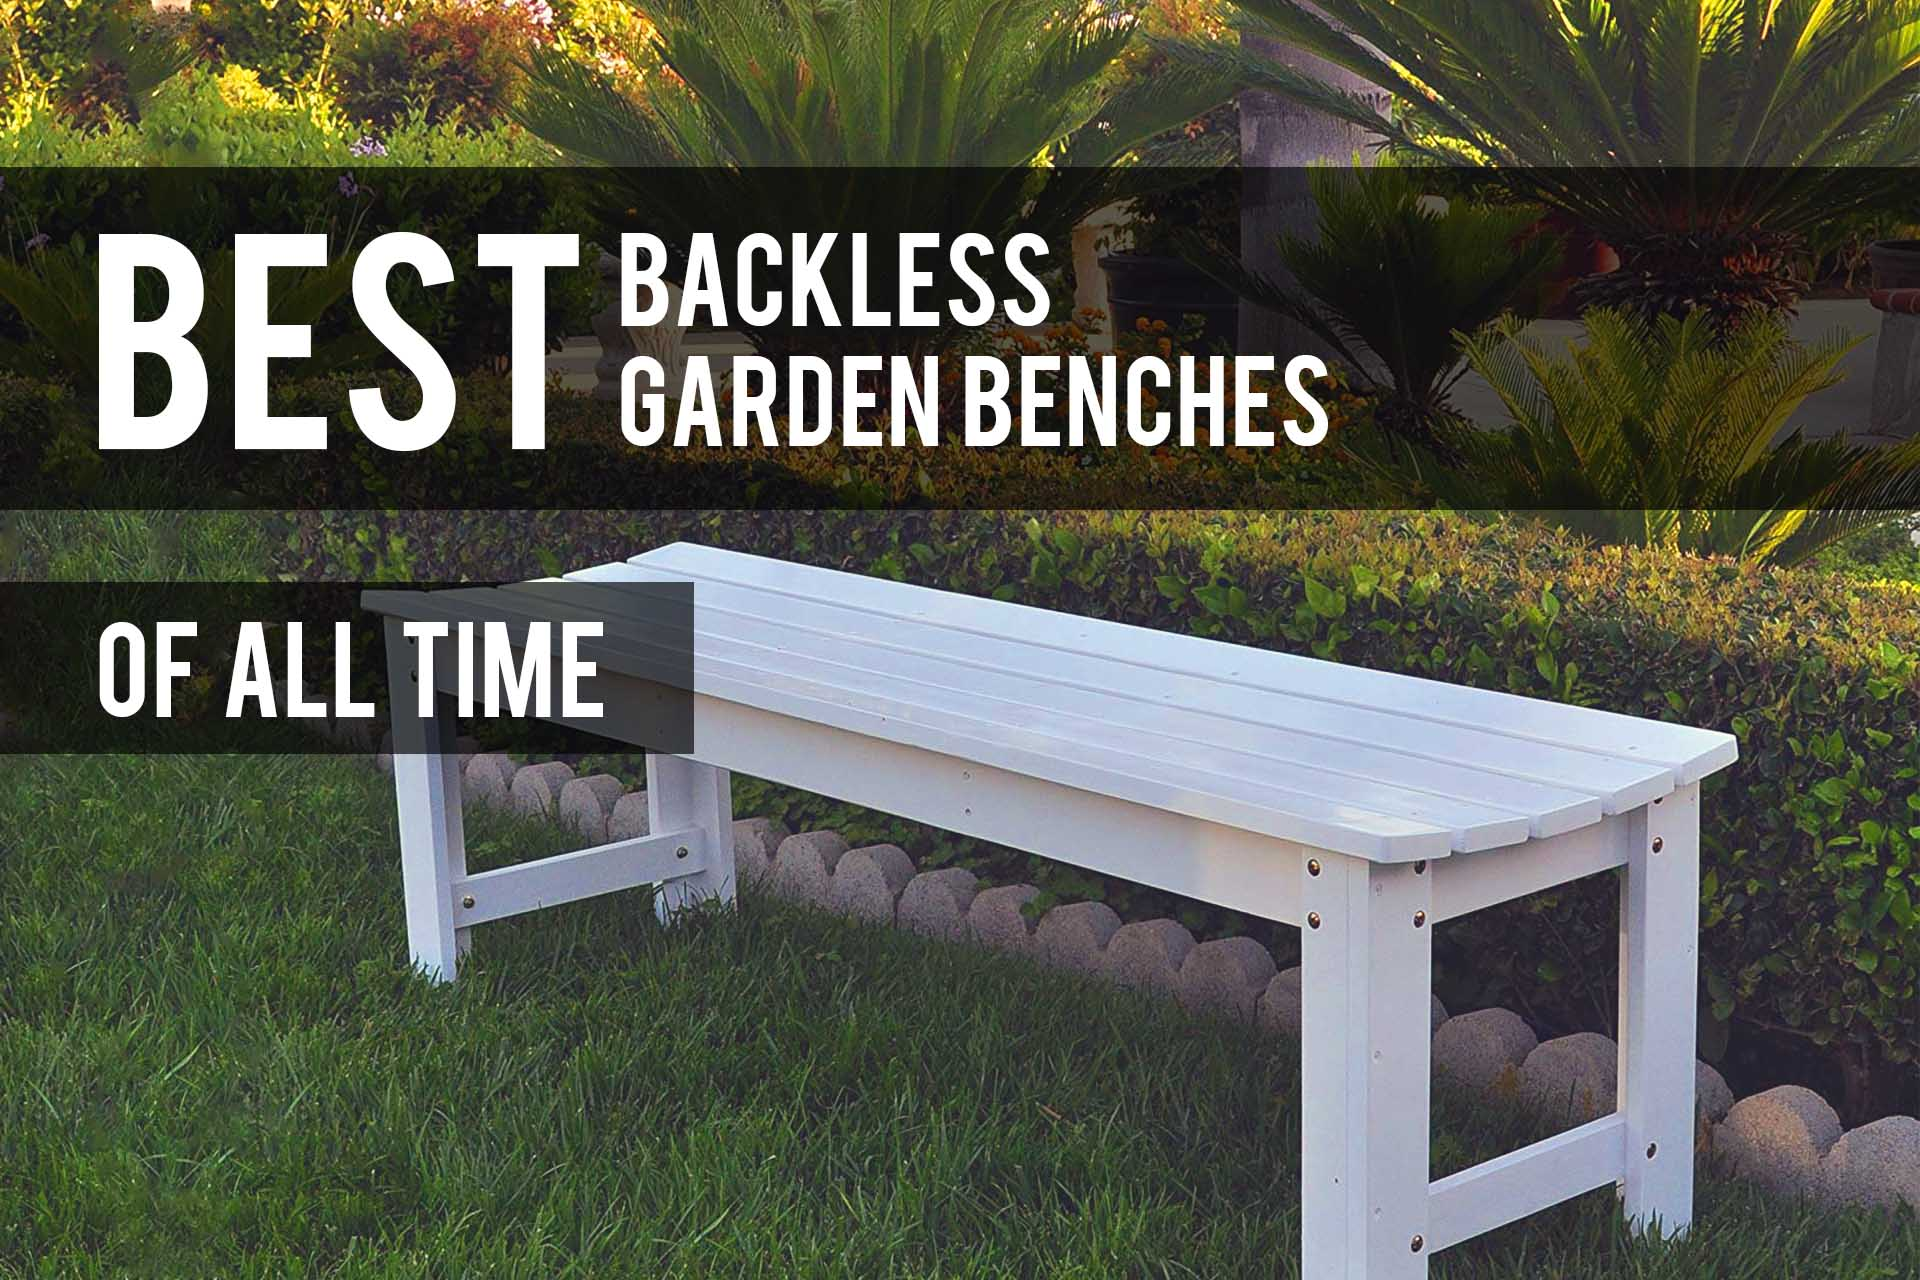 Peachy Best Backless Garden Benches 2019 Reviews The Patio Pro Andrewgaddart Wooden Chair Designs For Living Room Andrewgaddartcom